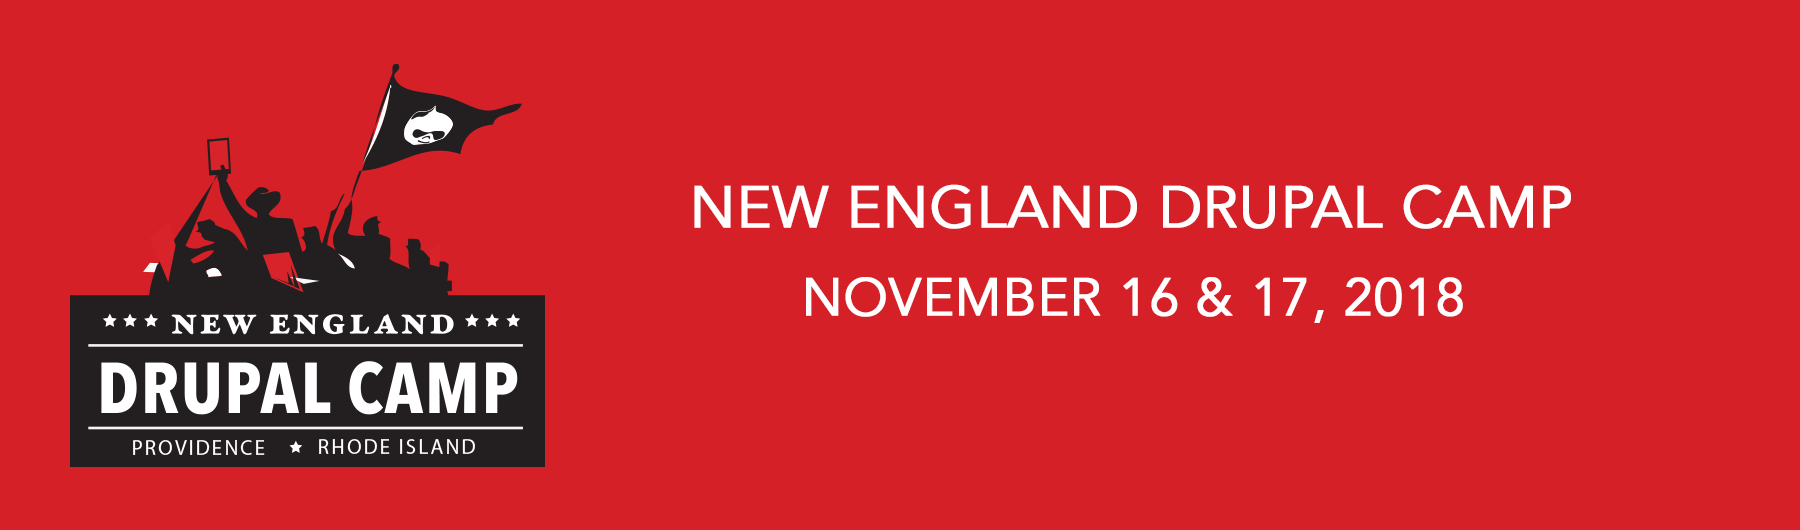 New England Drupal Camp Registration